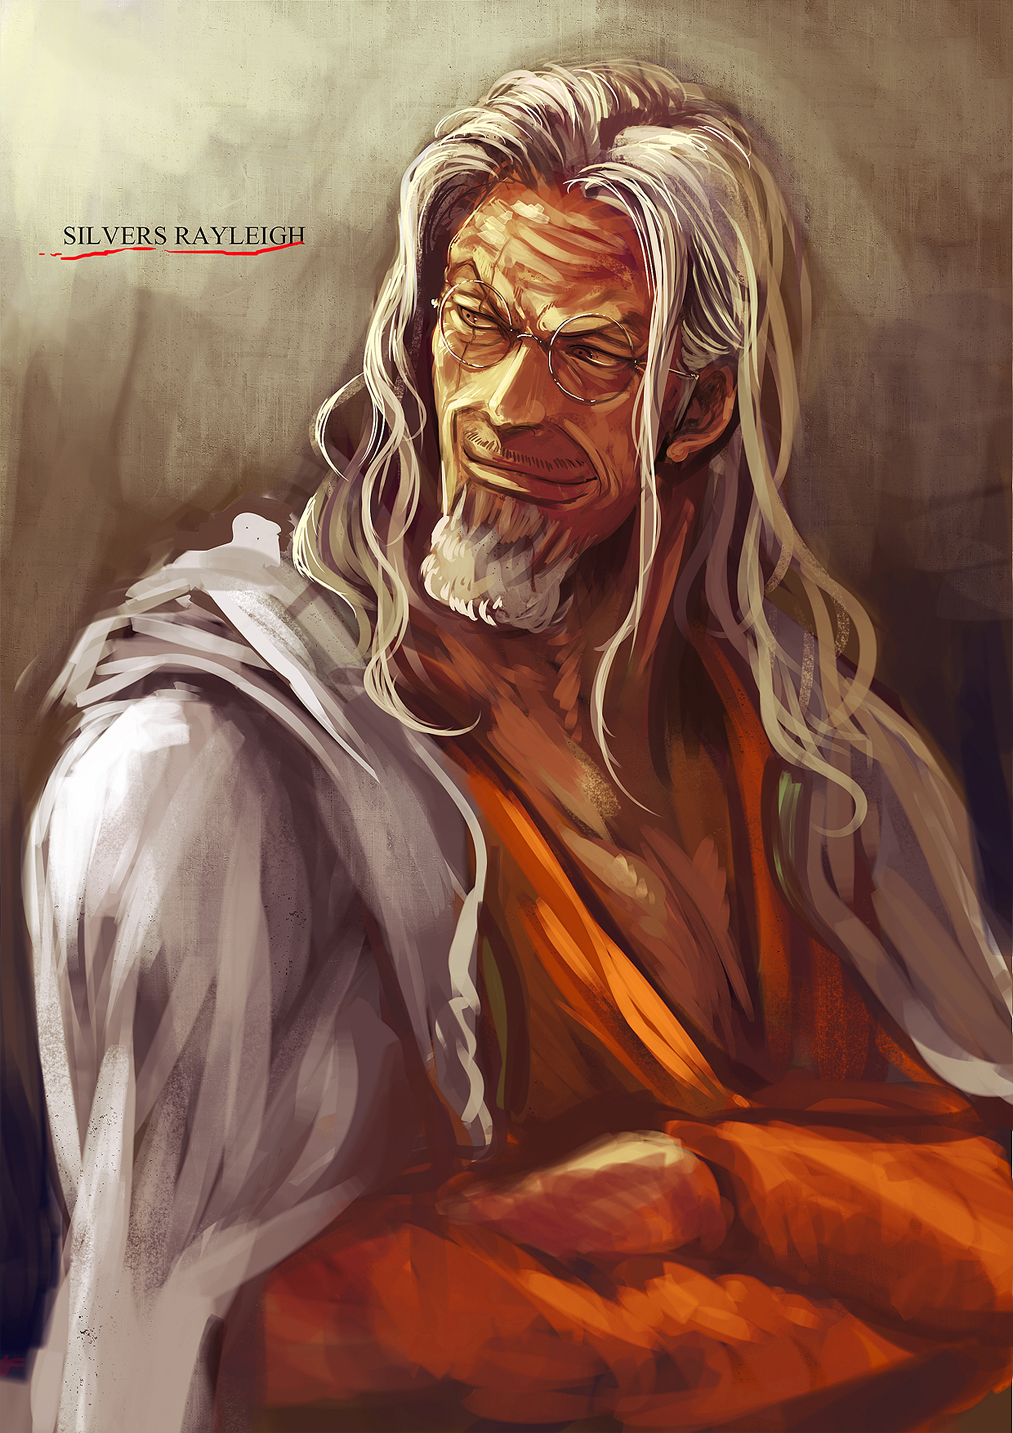 Silvers Rayleigh ONE PIECE Zerochan Anime Image Board